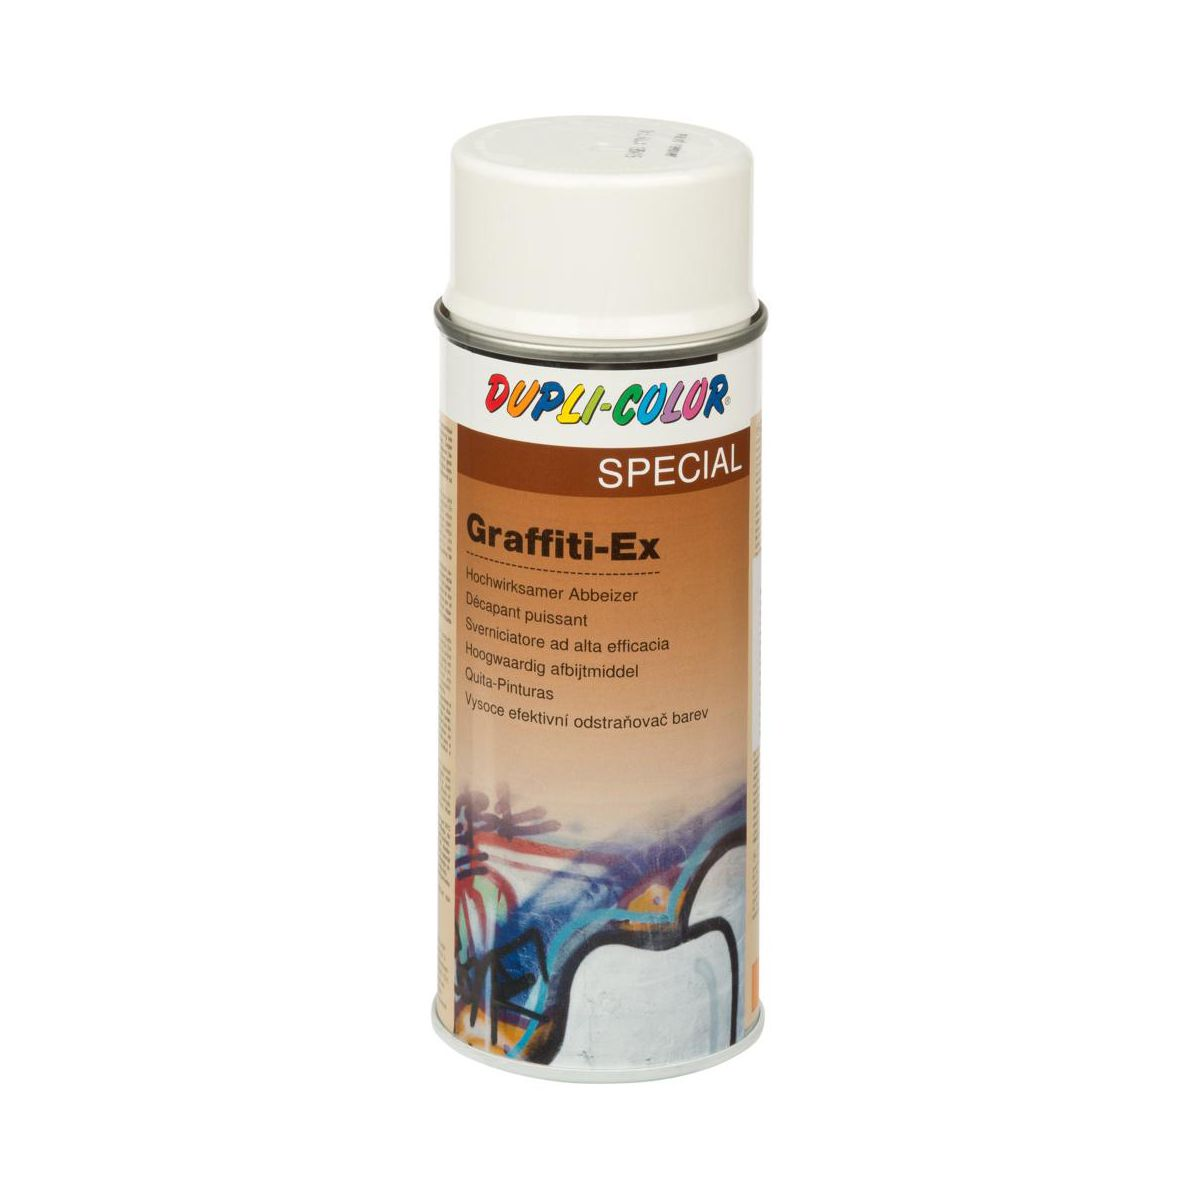 Rodek usuwaj cy graffiti graffiti ex 400 ml dupli color preparaty do usuwania pow ok - Graffiti leroy merlin behang ...